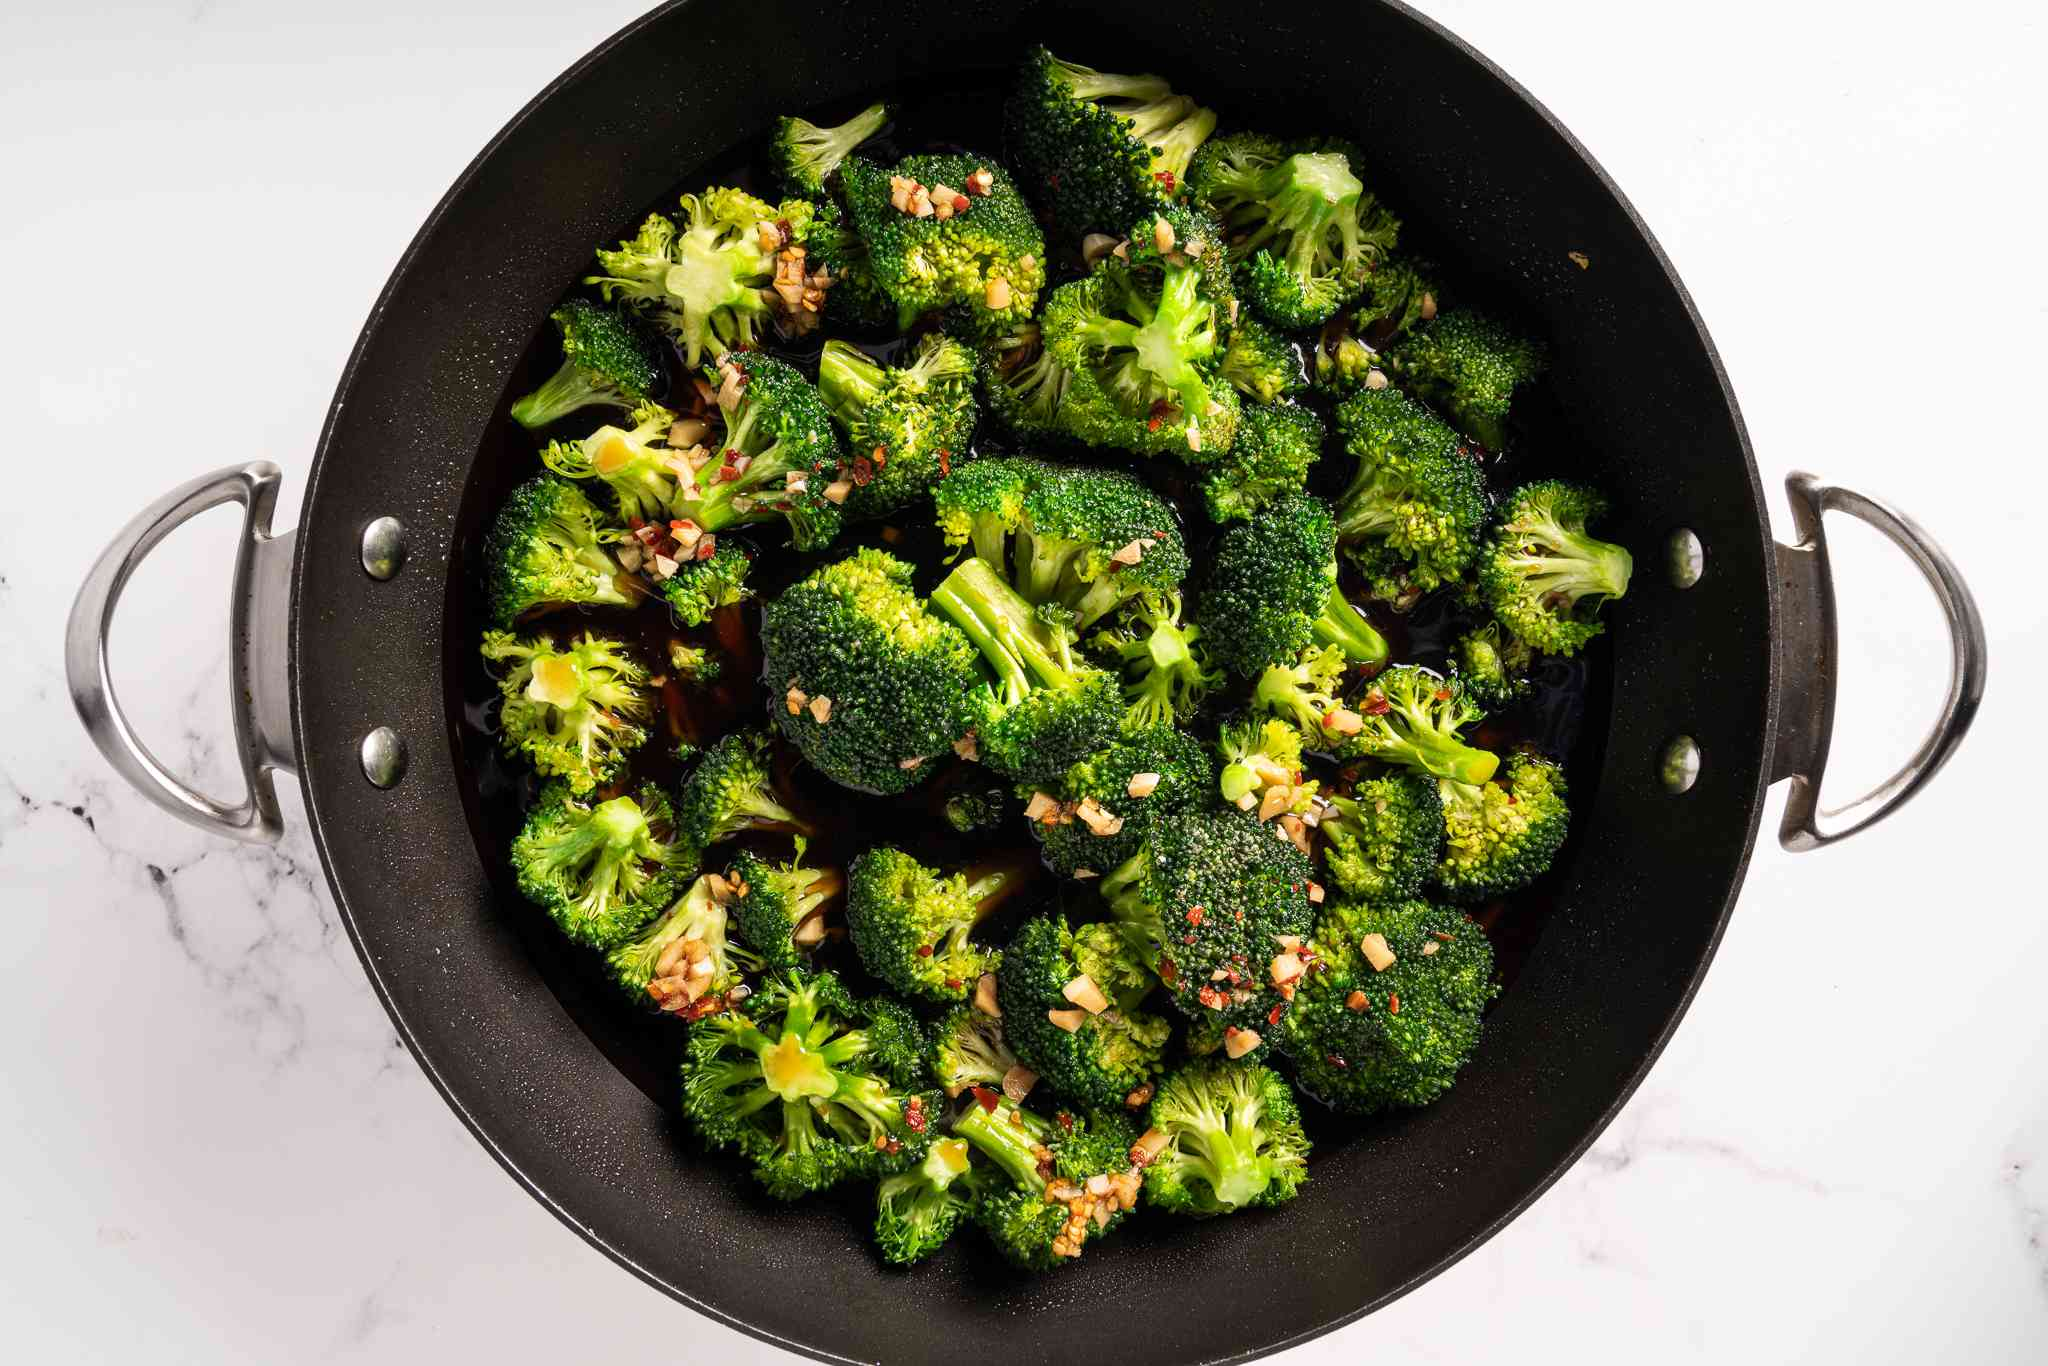 add vegetable broth mixture to the broccoli in the pan